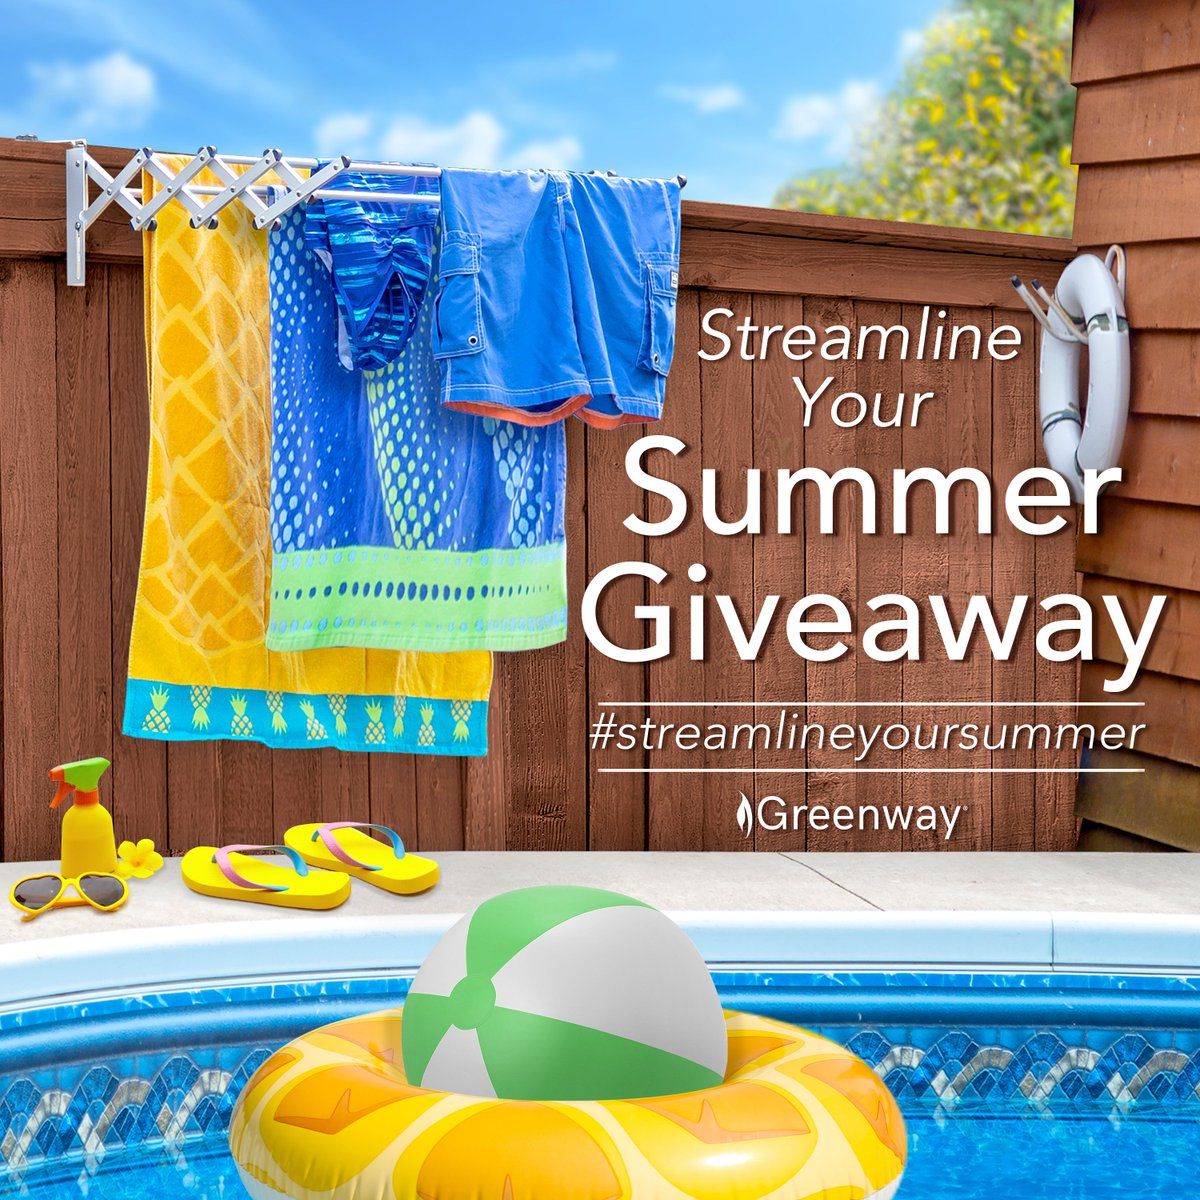 Greenway is here to get your summer streamlined for optimal organization and fun! Enter our Streamline your Summer Giveaway for a chance to win the Indoor/Outdoor Foldable Drying Rack, with Optional Wall Mount. Enter here https://t.co/zTomZtpWQZ #streamlineyoursummer https://t.co/ntPhUOMnvl